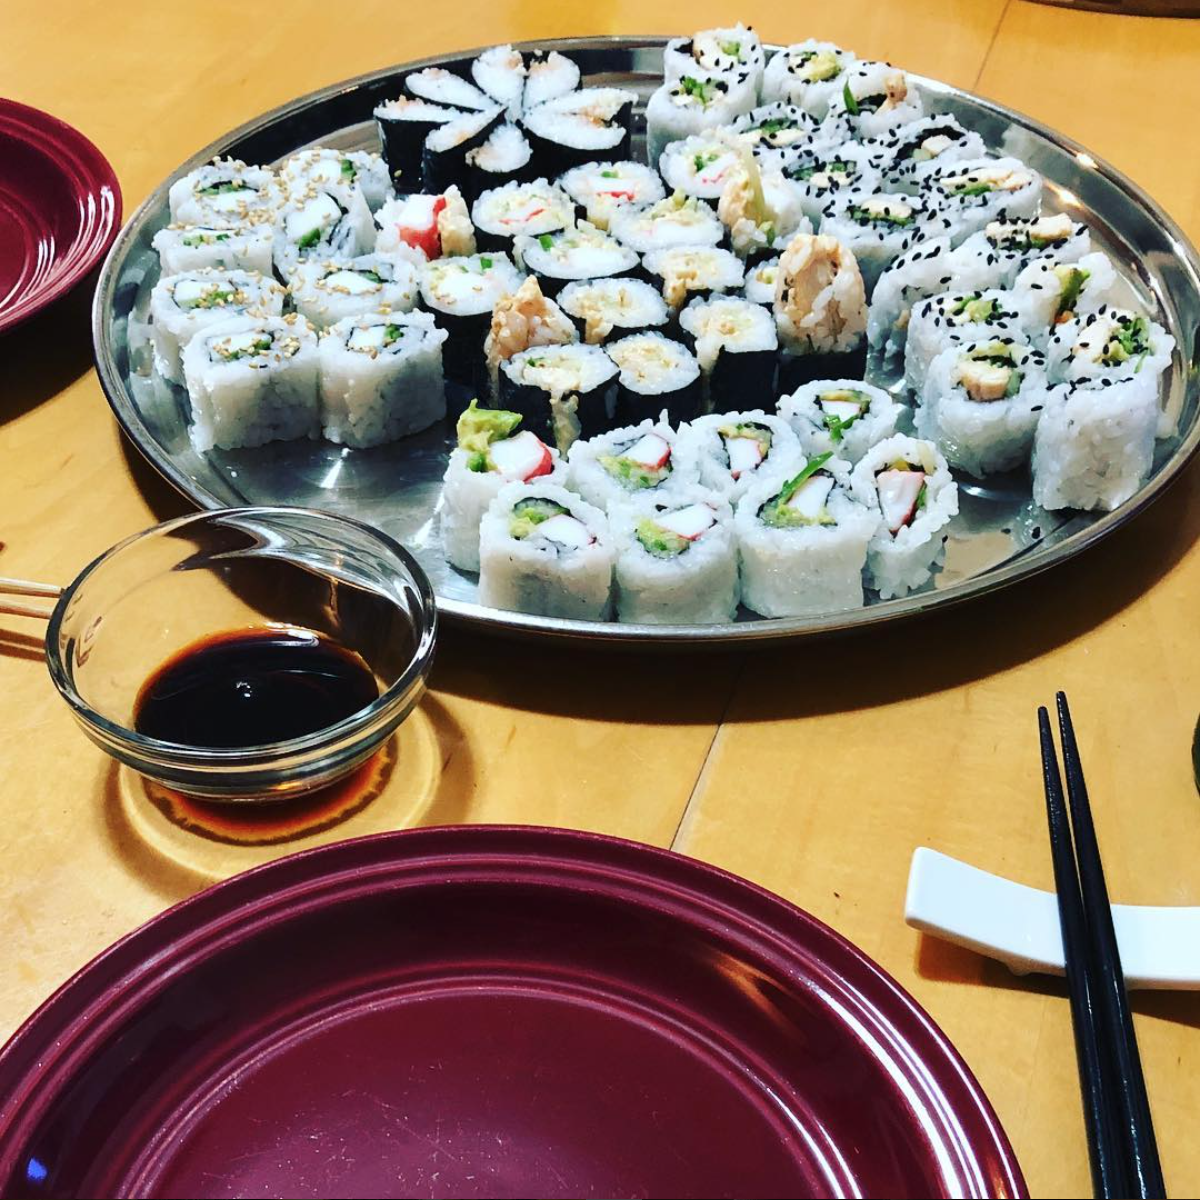 Making sushi at home isn't as hard as it looks!